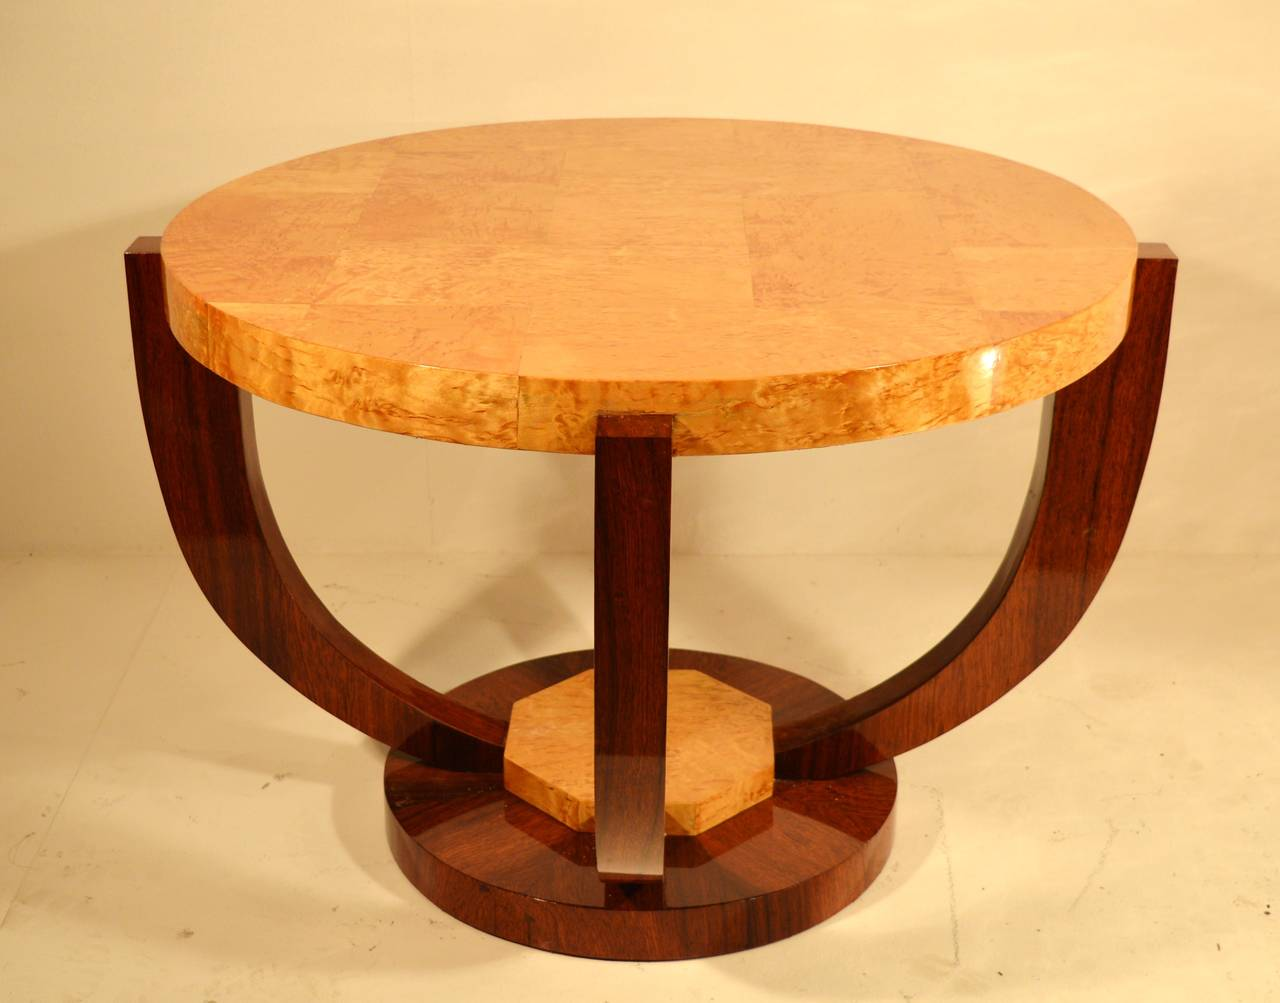 Art Deco Coffee Table In Rosewood And Silver Birch Butt Veneer At 1stdibs